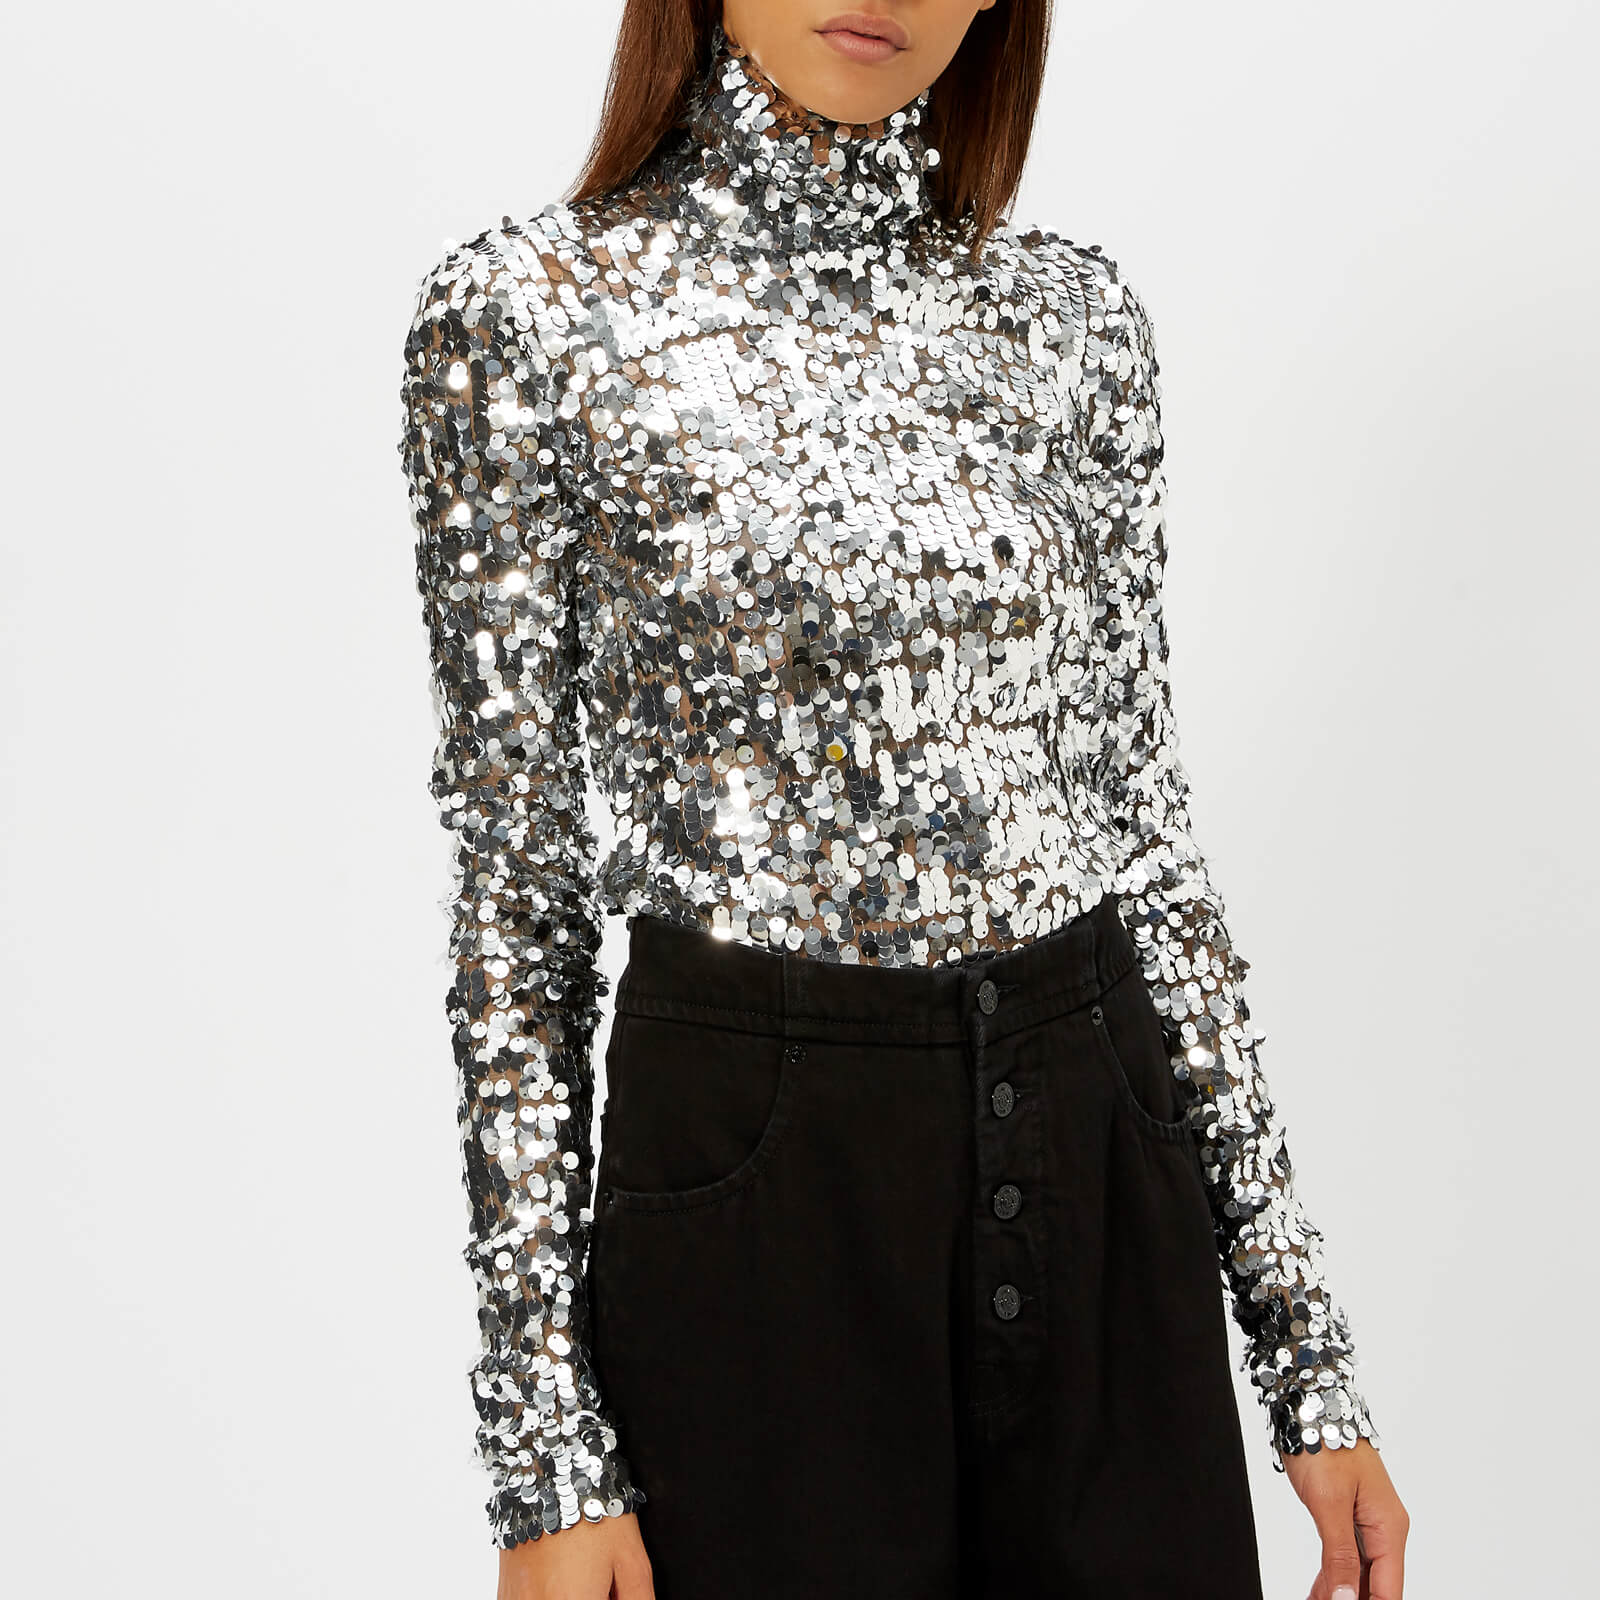 1a41b920b6c MM6 Maison Margiela Women's Sequin Top - Silver - Free UK Delivery over £50